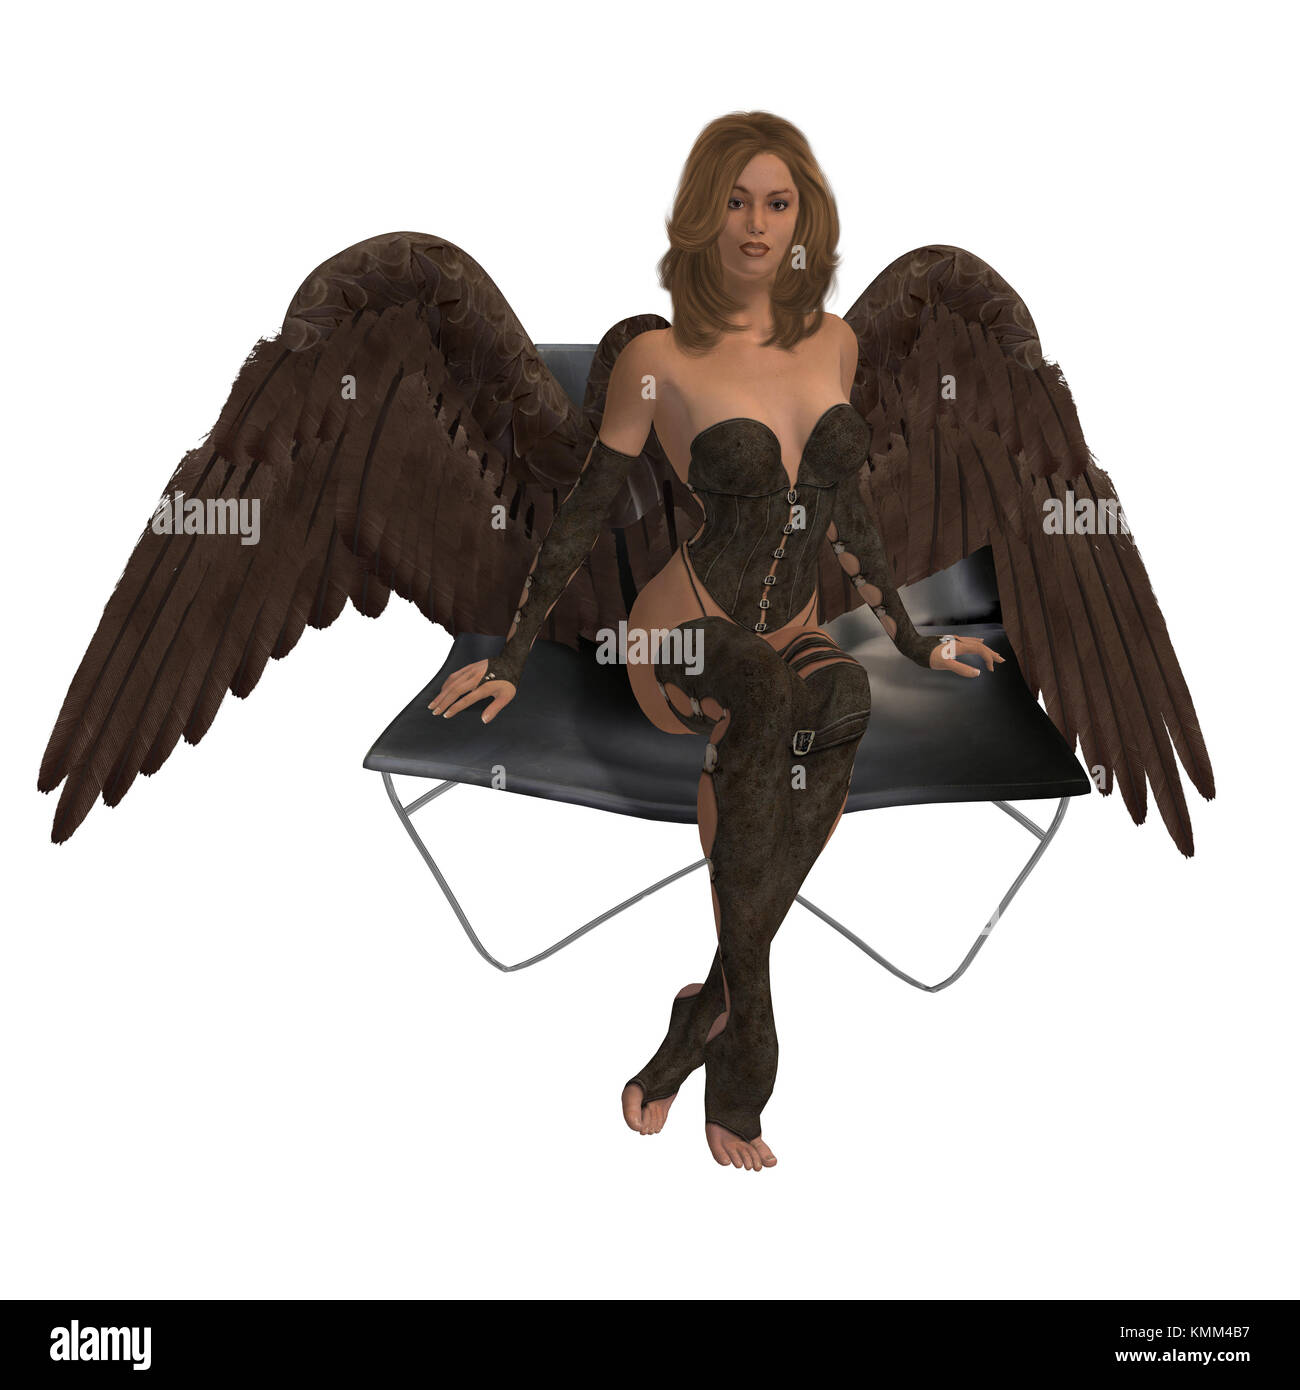 Brunette angel sitting on a chair with wings spread - Stock Image